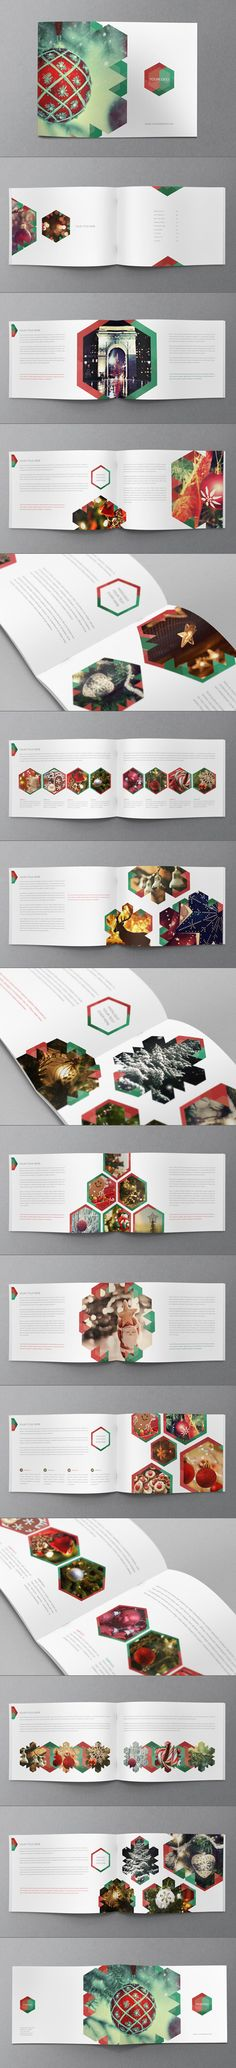 overlook the colors and theme - the shape of our logo + layout